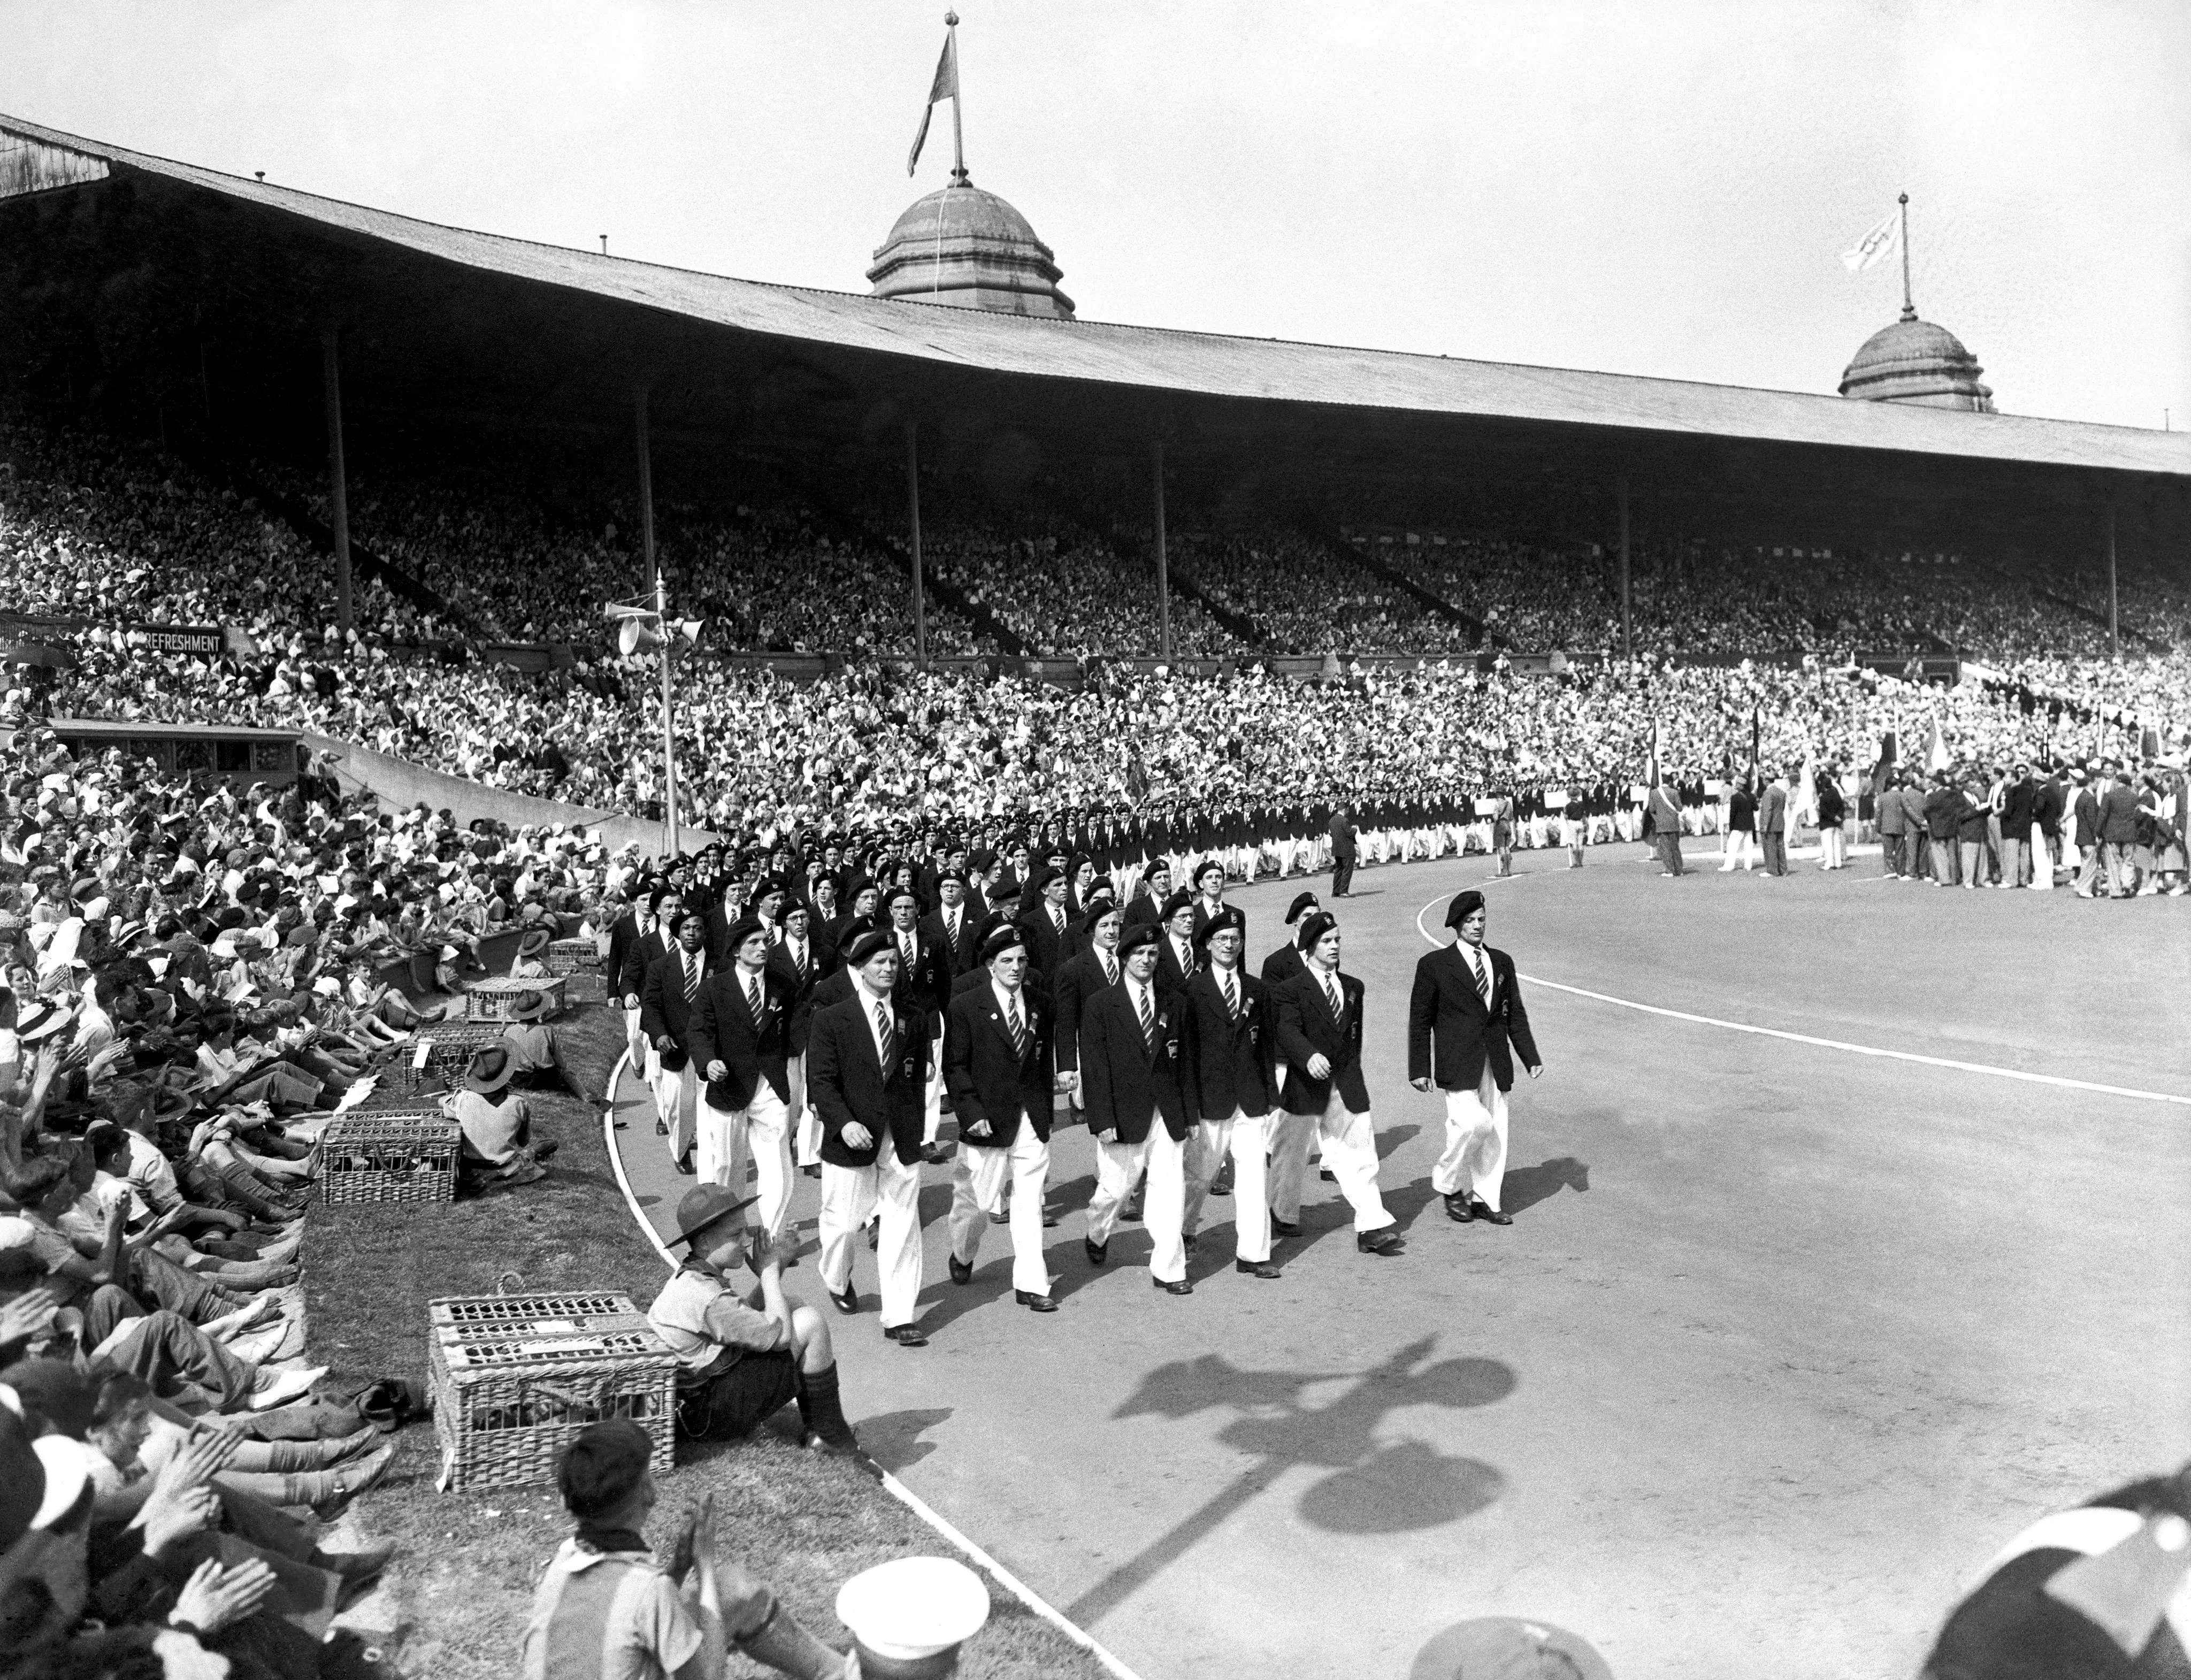 London, 1948: Two years after the end of World War II, the Olympics returned to London for a second time.